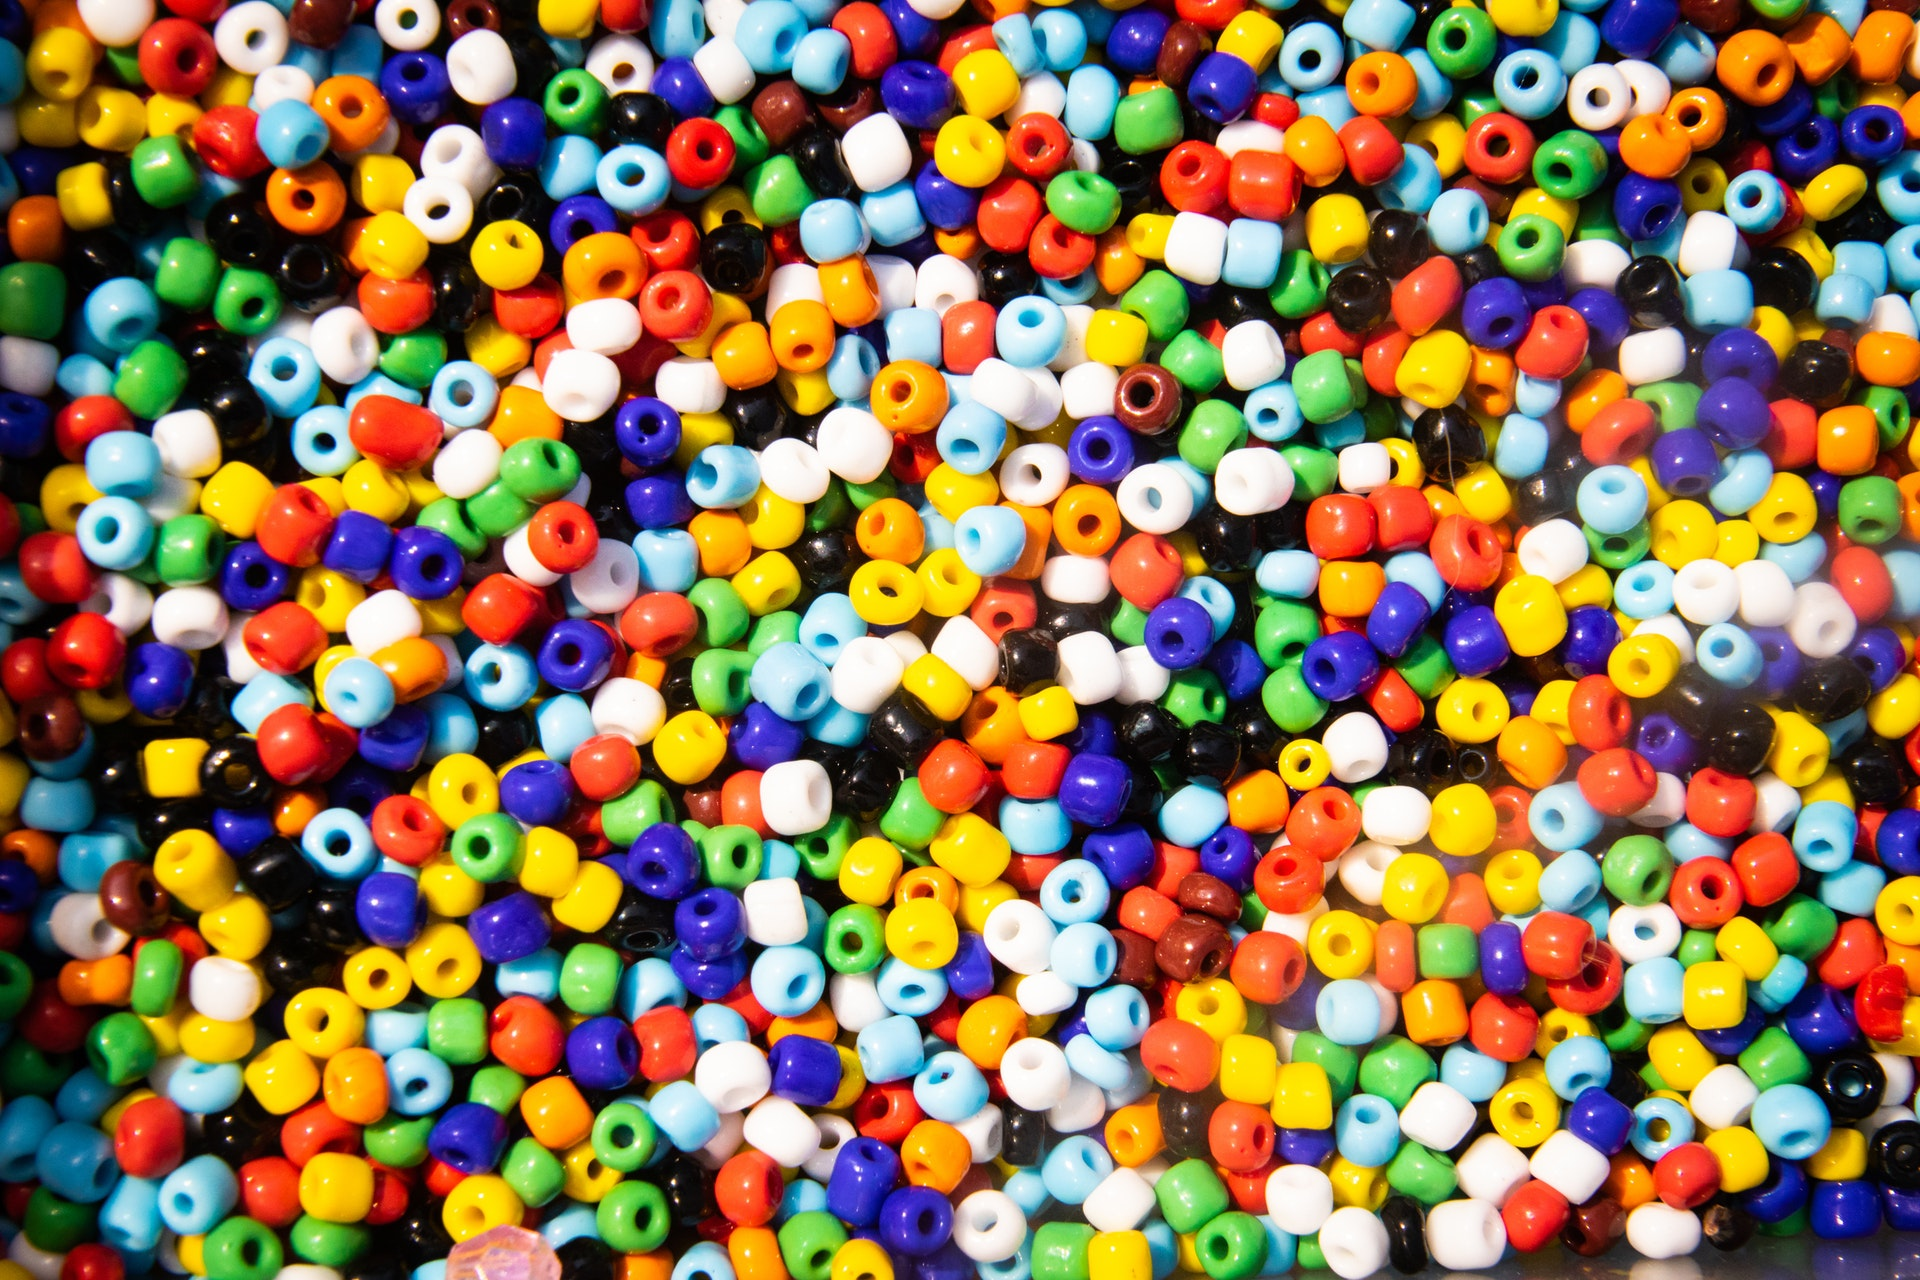 Web Agents are distributed like these beads.